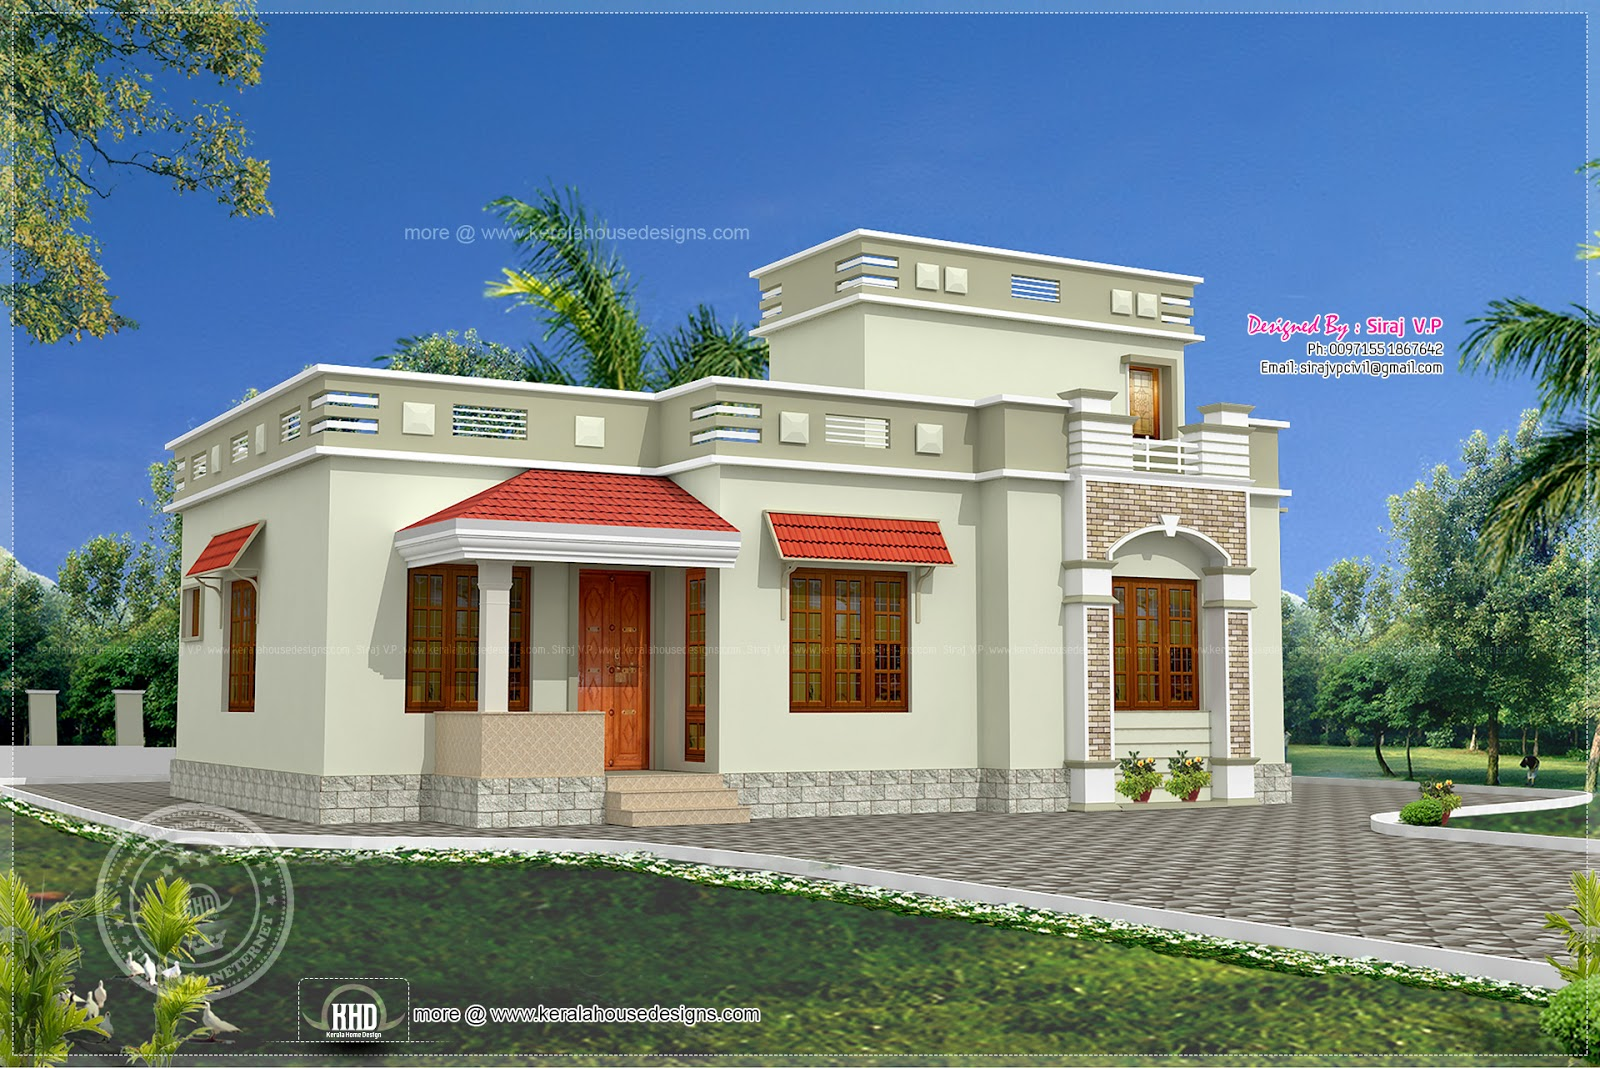 Low budget kerala style home in 1075 house design plans Low budget home design ideas